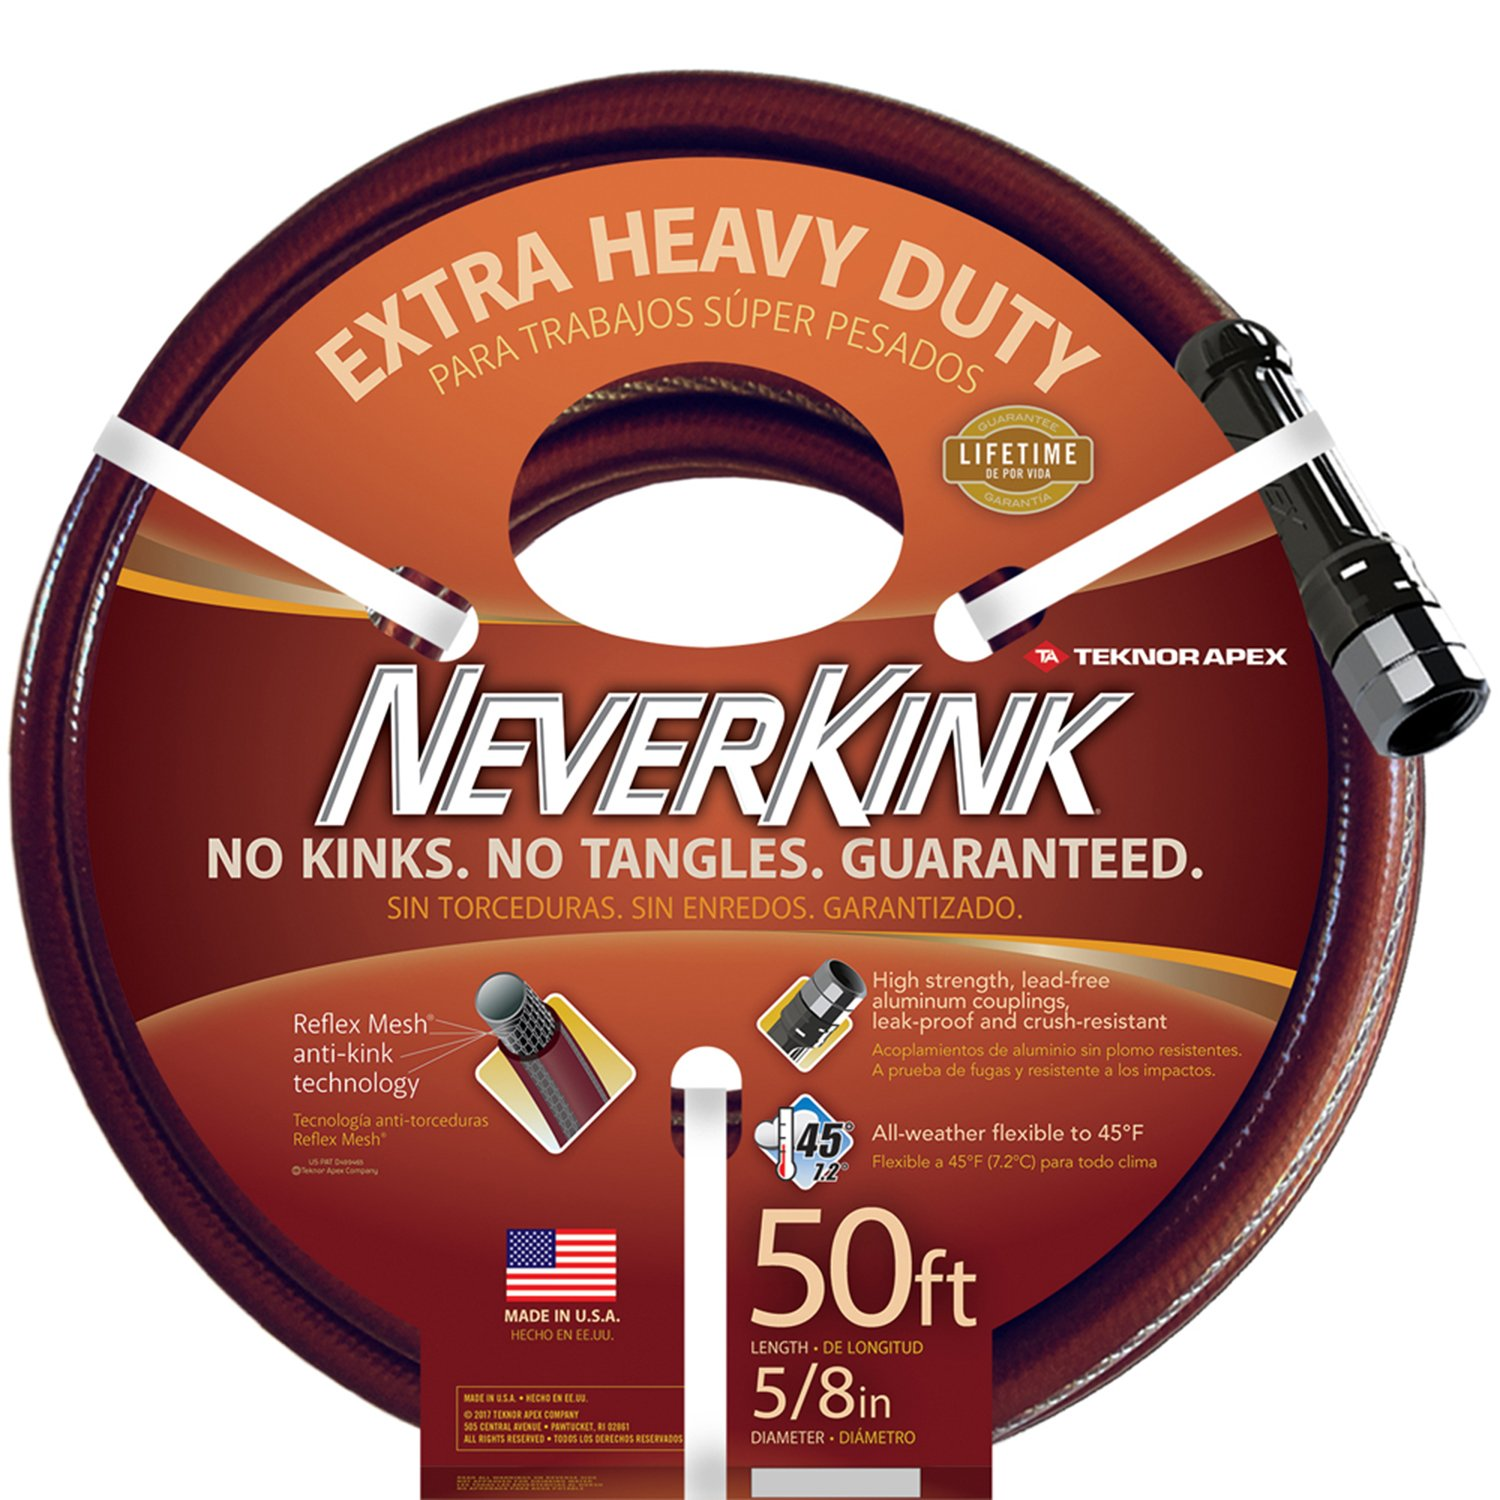 Teknor Apex NeverKink 8642-50, Extra Heavy Duty Garden Hose, 5/8-Inch by 50 -Feet